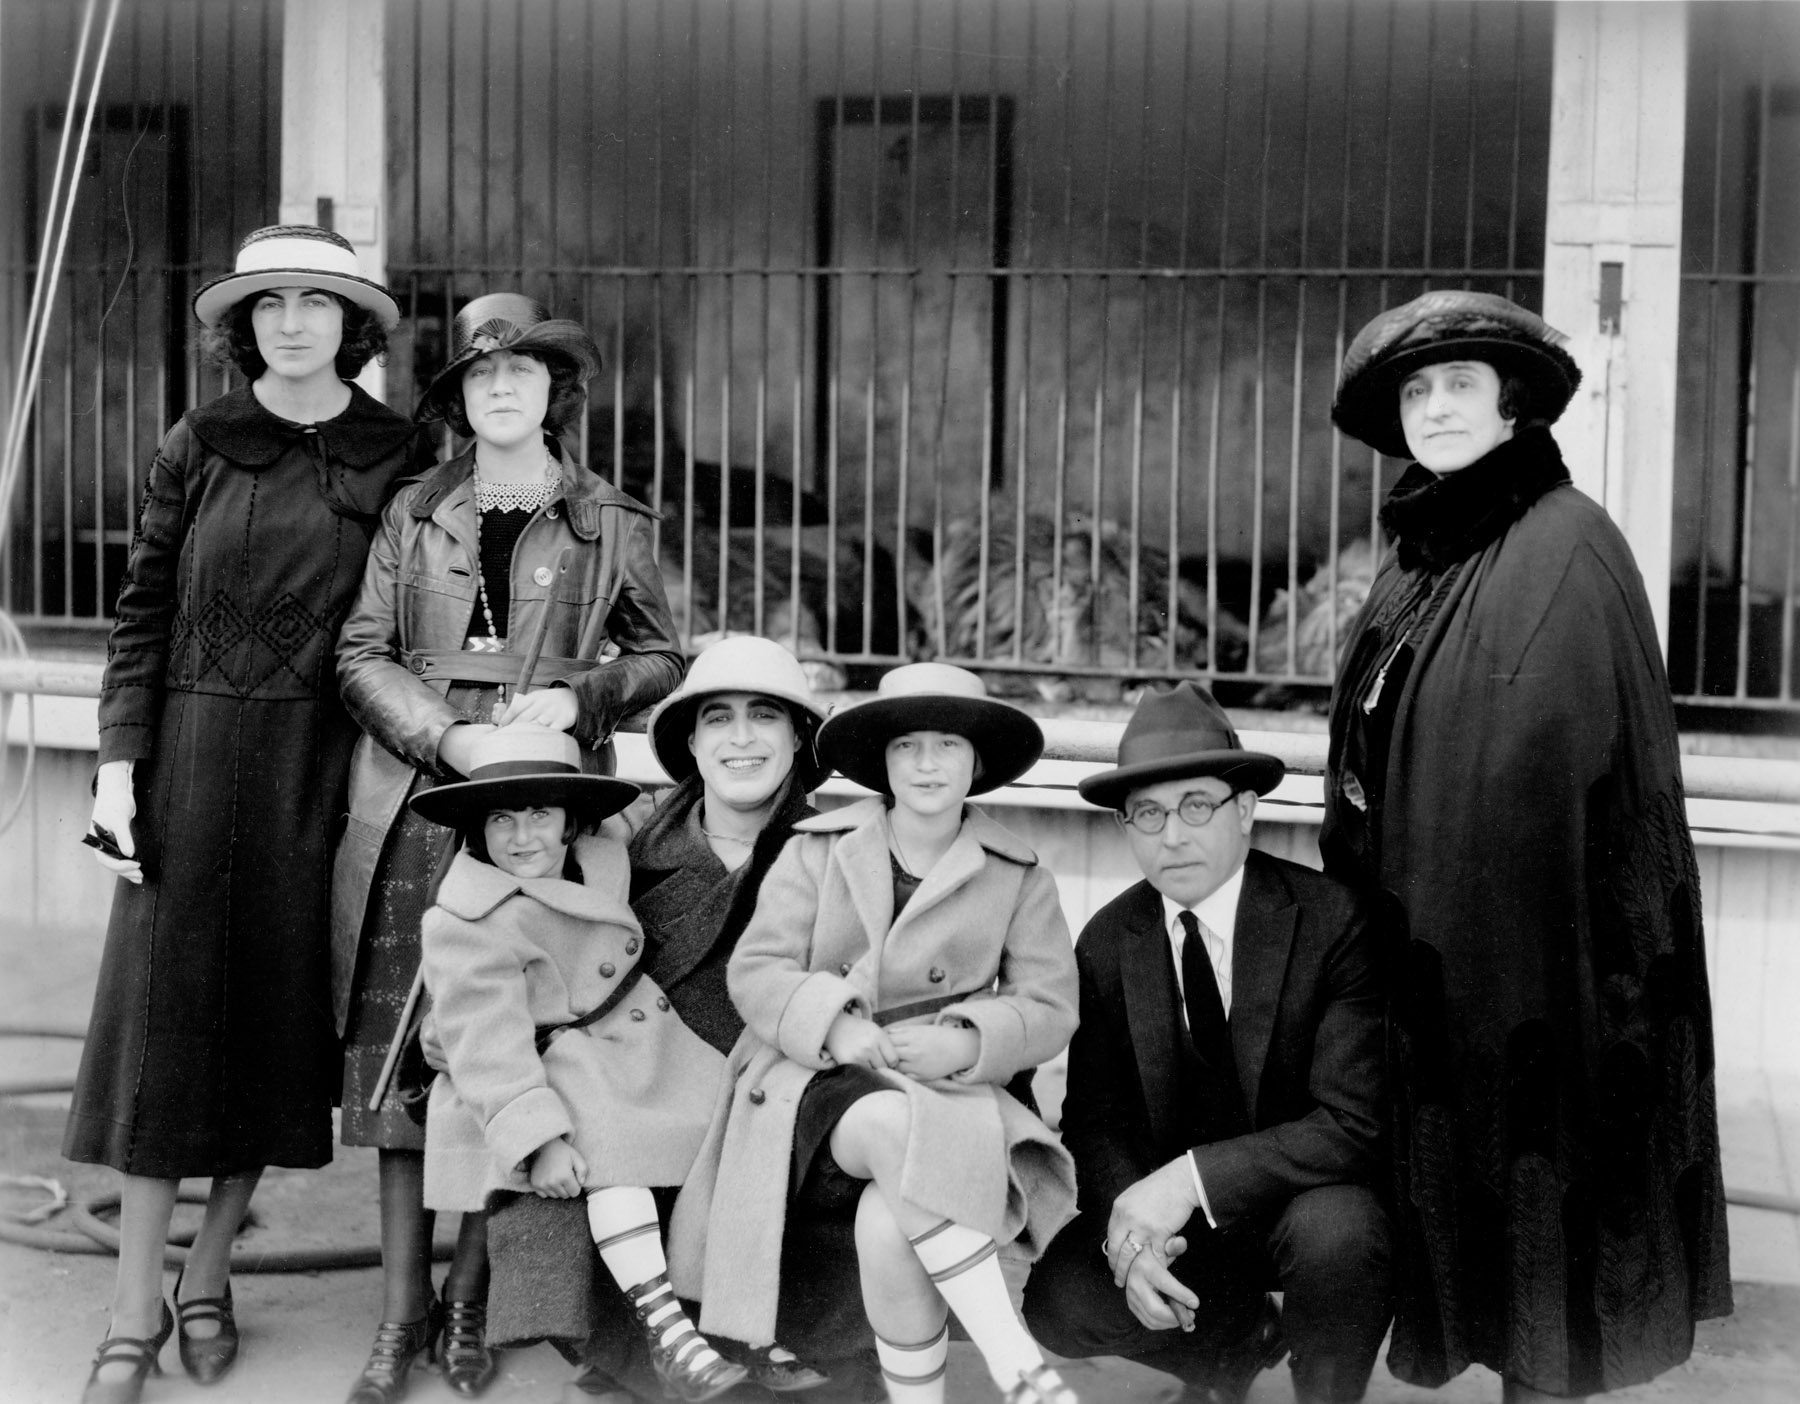 Group Photo at Fox Studios (1921)